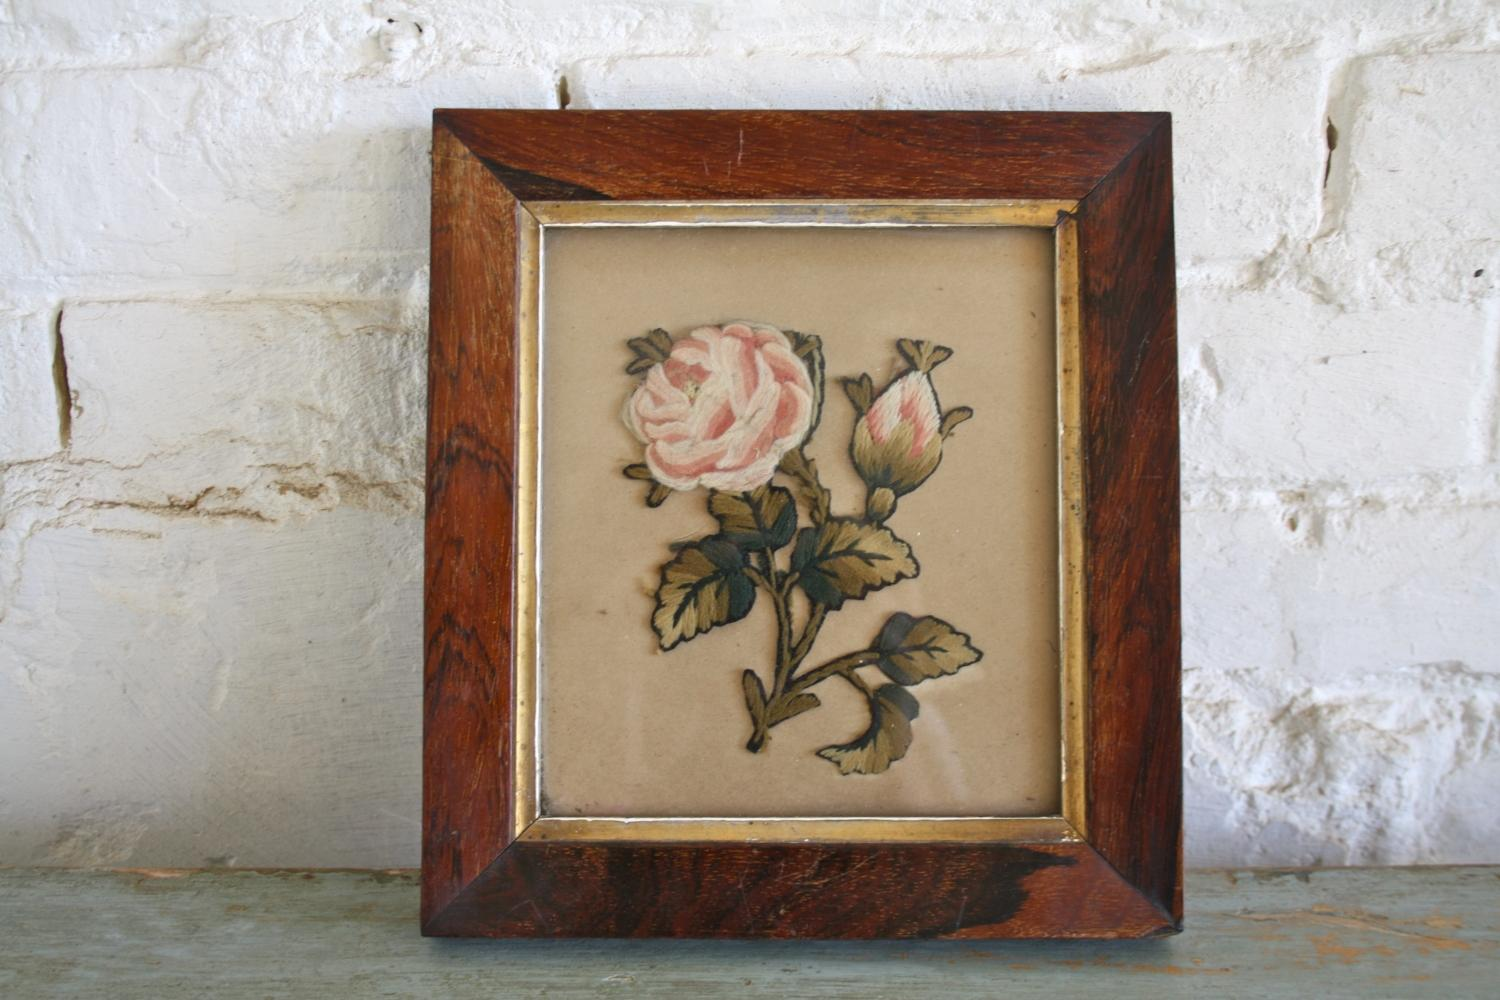 19th Century Embroidery in Rosewood Frame